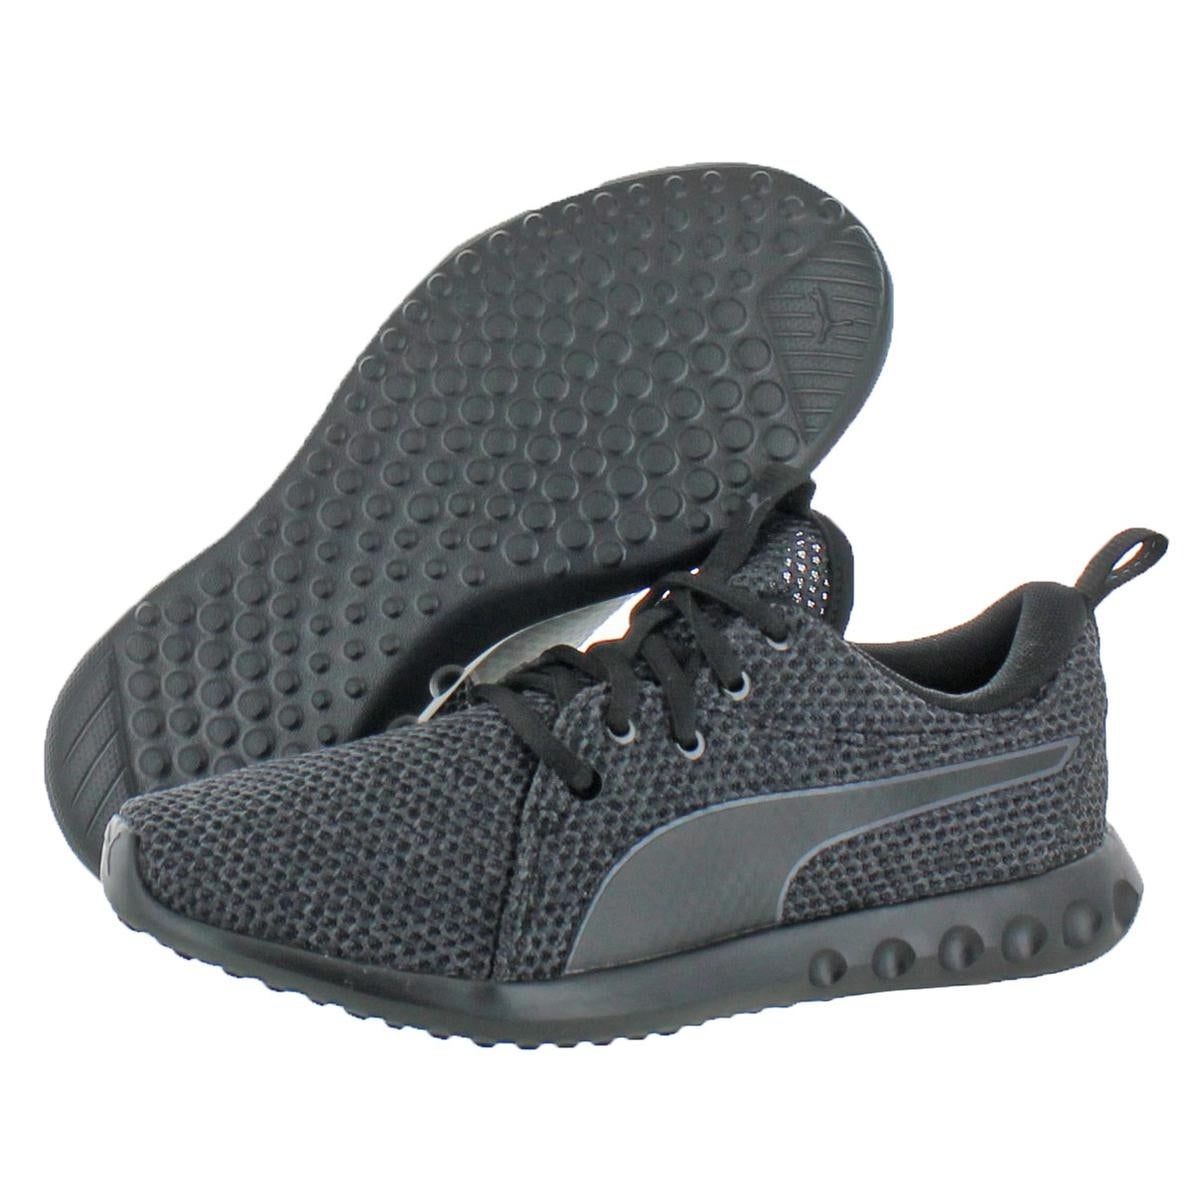 dcf791a2b4ea85 Shop Puma Womens Carson 2 Nature Knit Running Shoes SoftFoam Lifestyle -  Free Shipping On Orders Over  45 - Overstock - 23503514